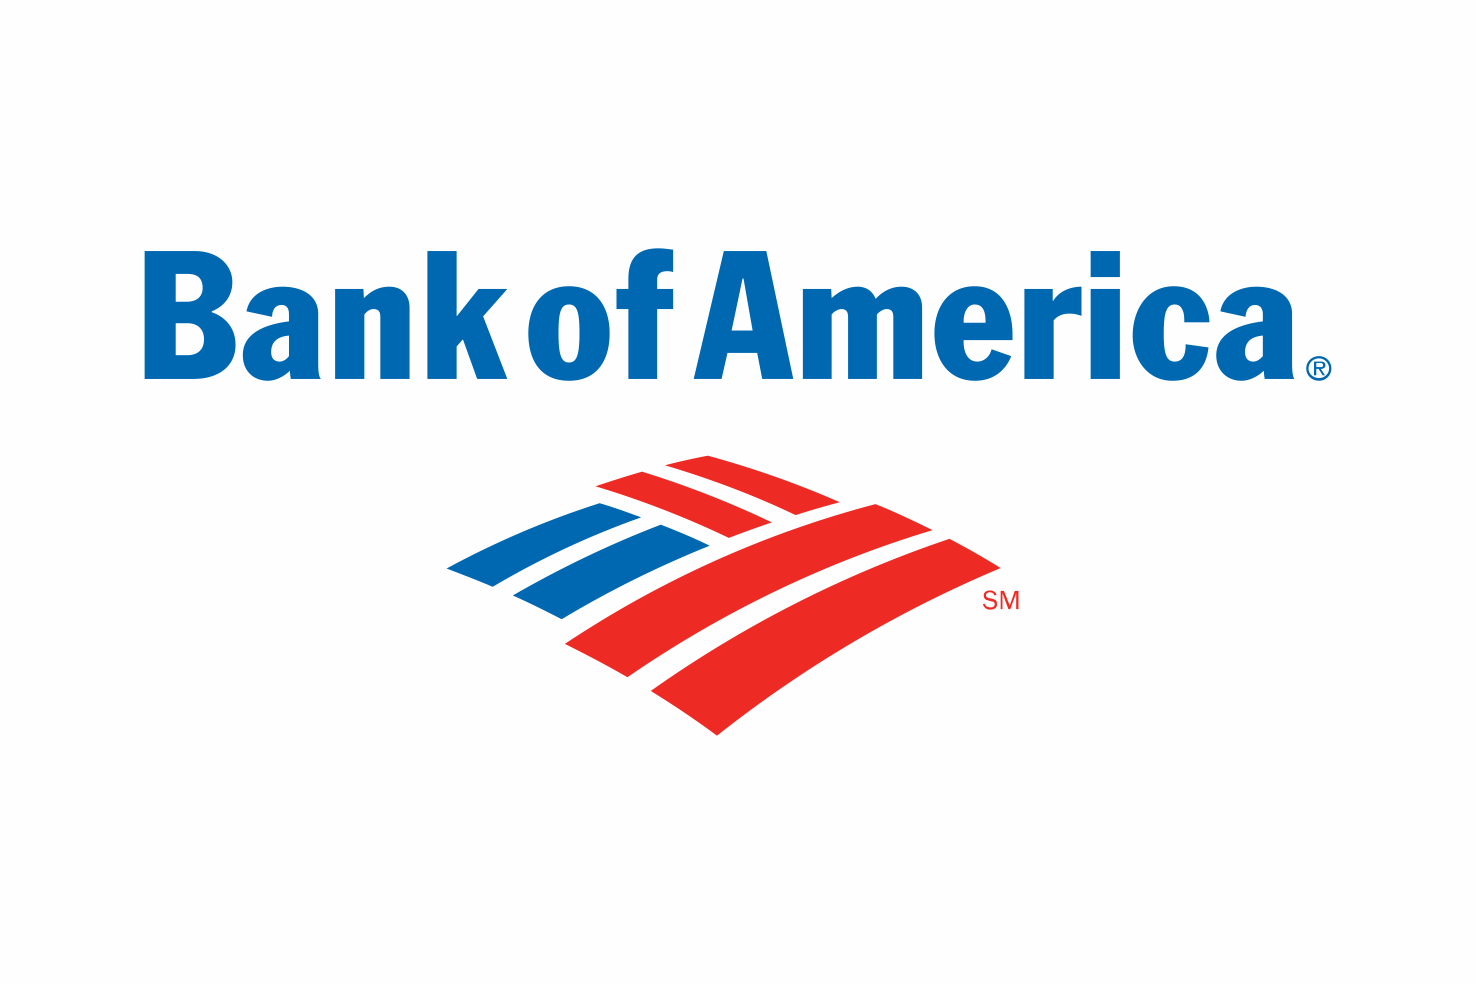 Bank of America Colombia